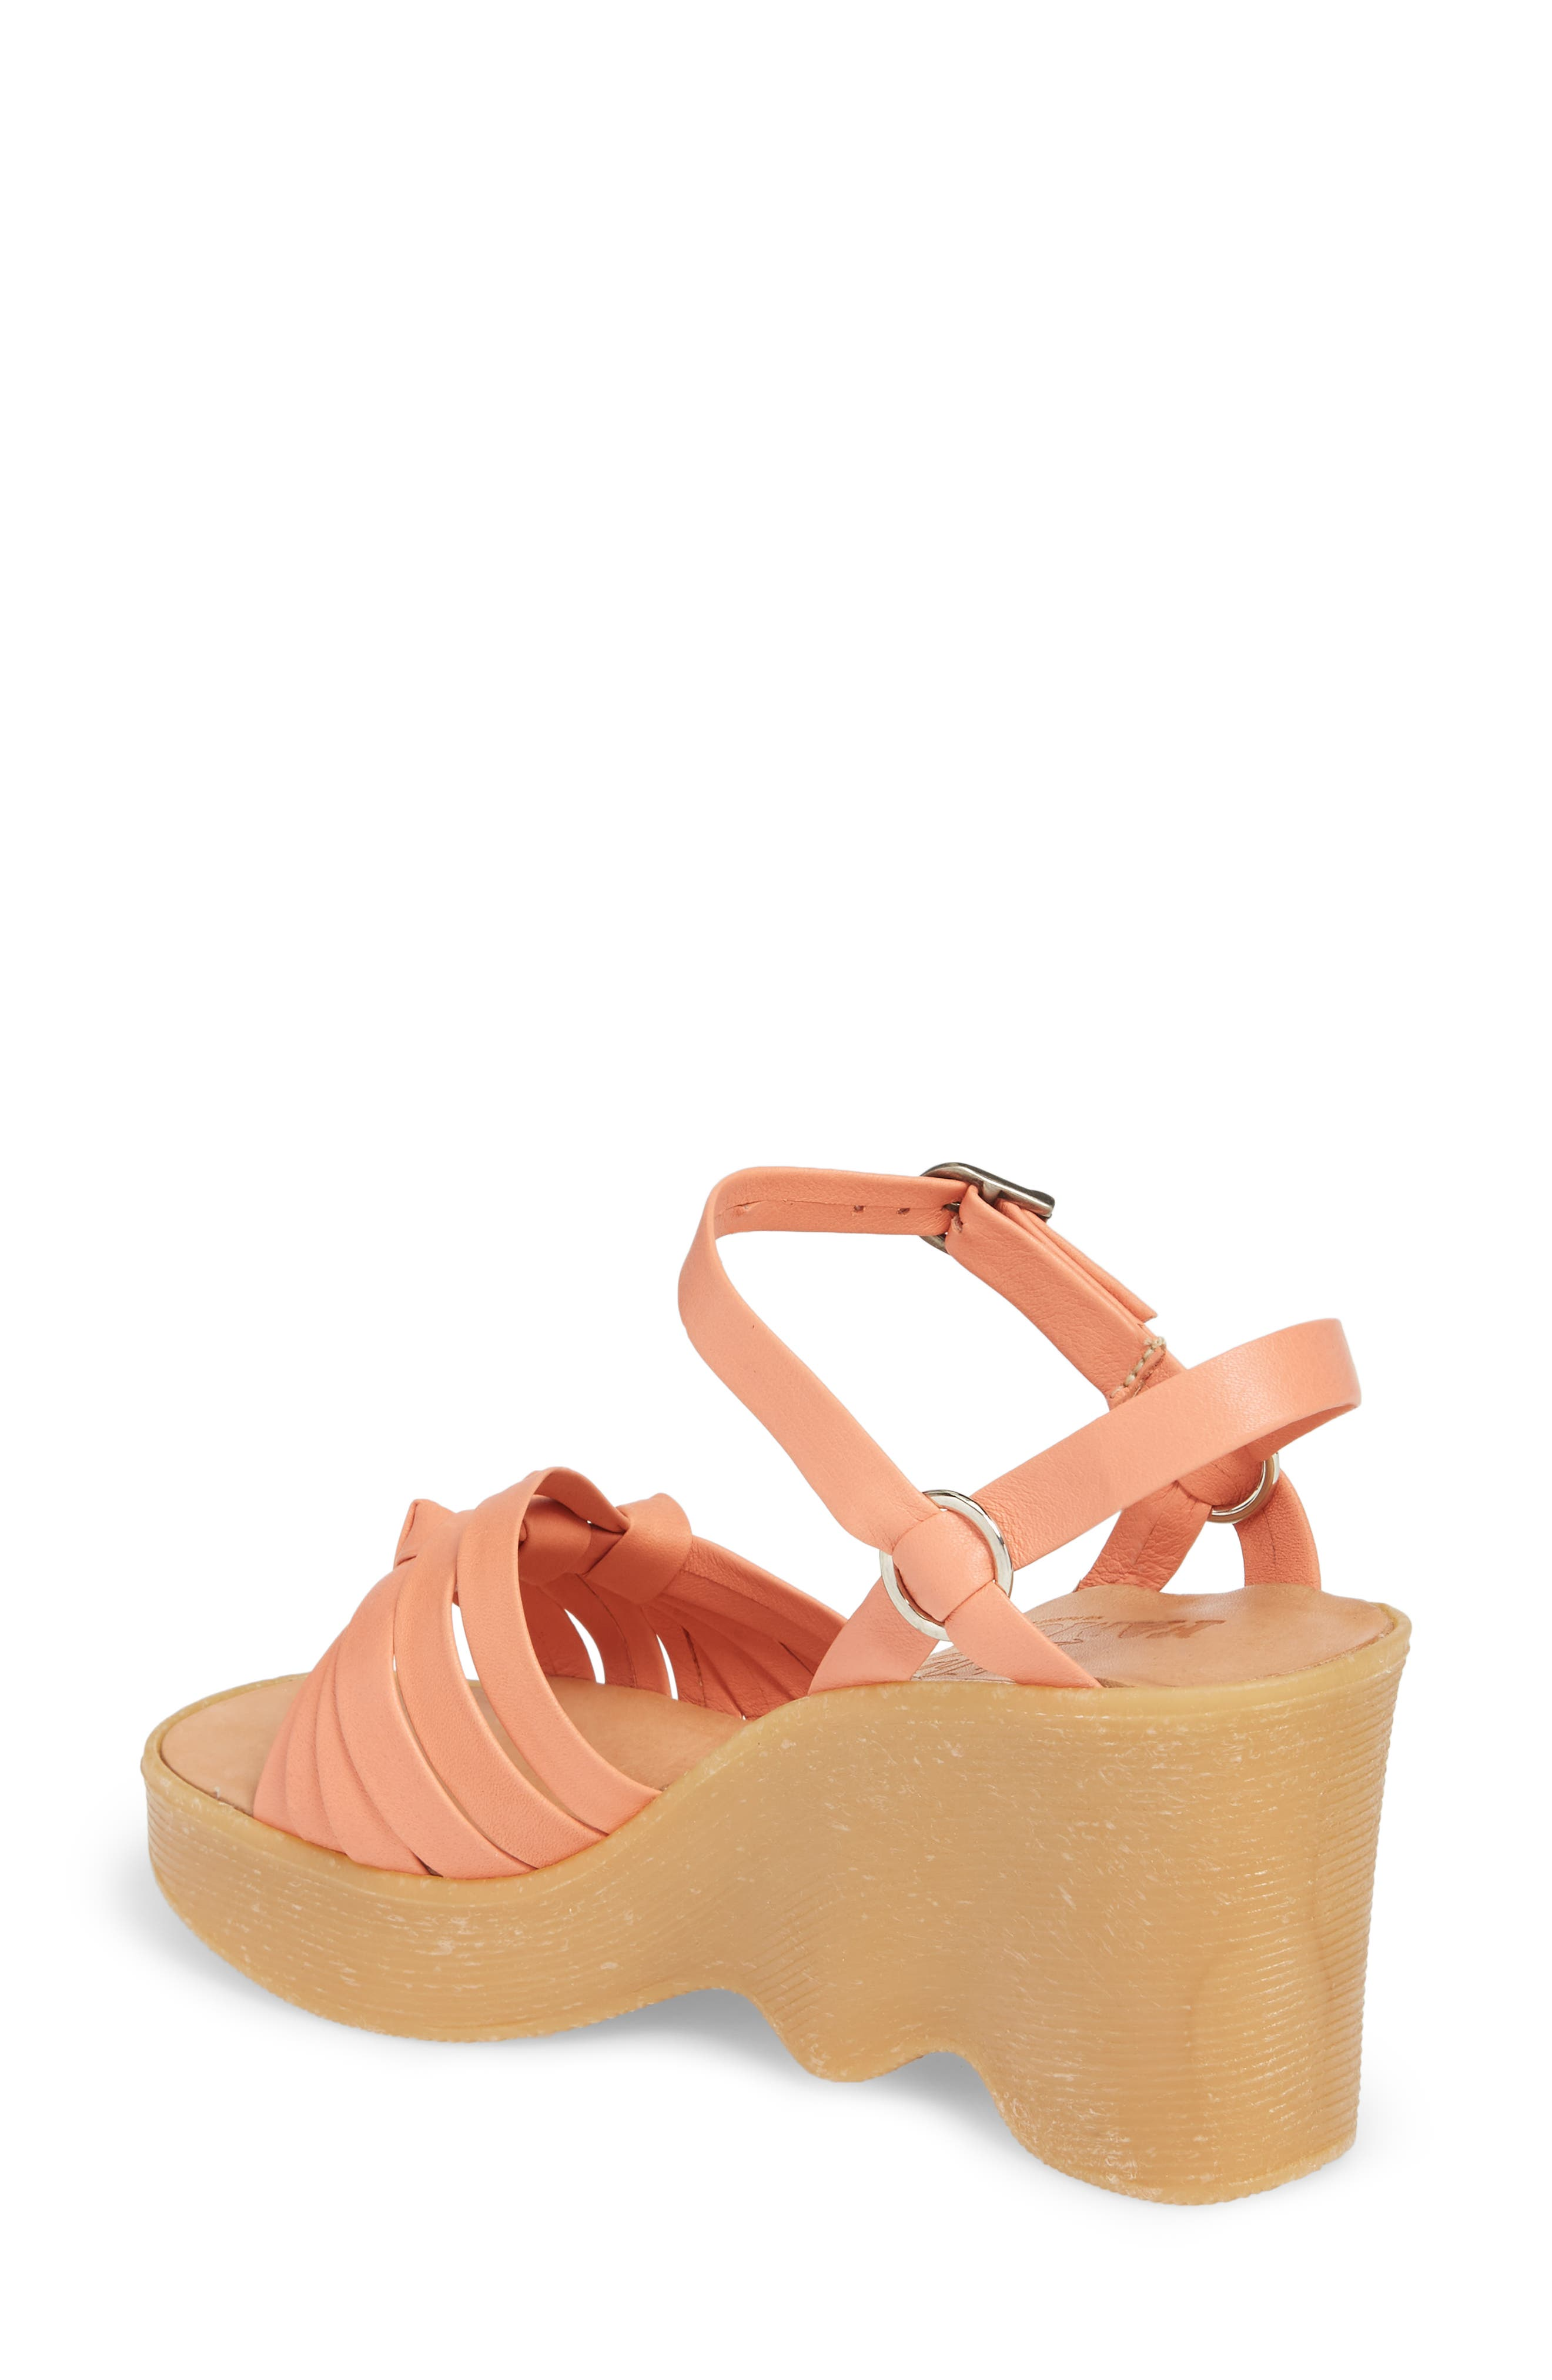 Knot So Fast Wedge Sandal,                             Alternate thumbnail 2, color,                             Salmon Leather